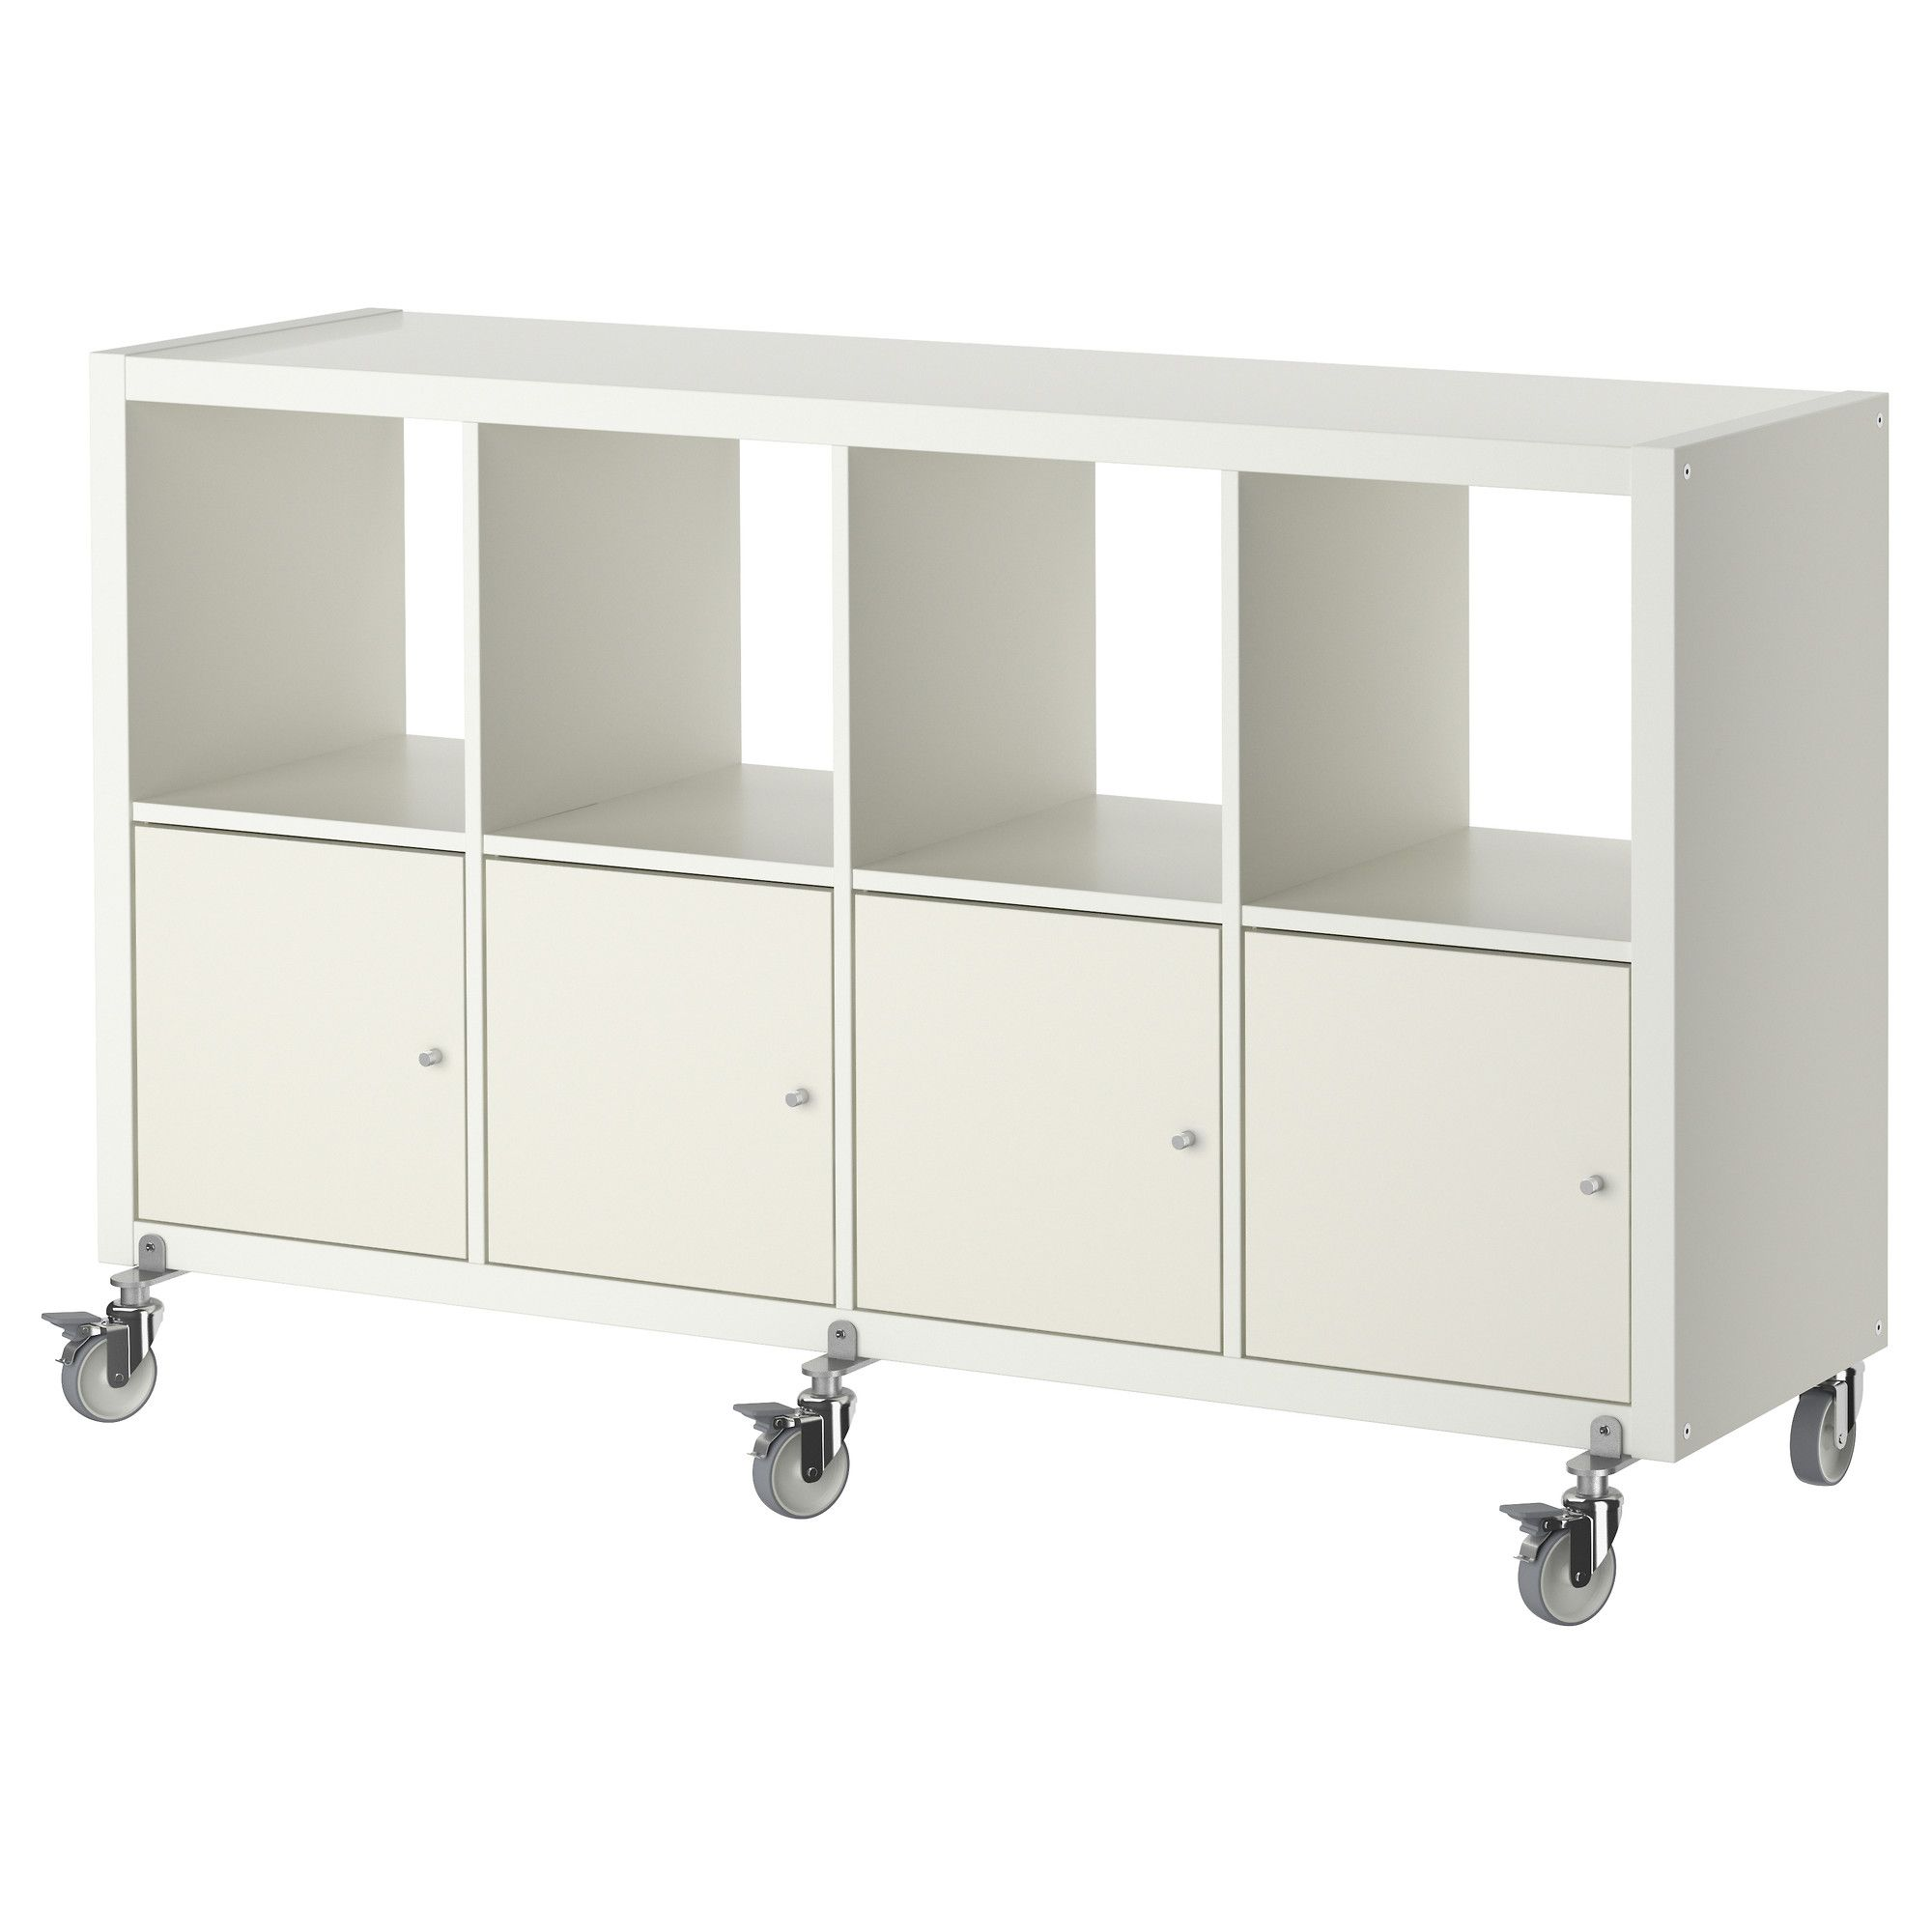 Kallax Regal Ikea kallax shelf unit on casters with 4 doors white kallax shelf unit